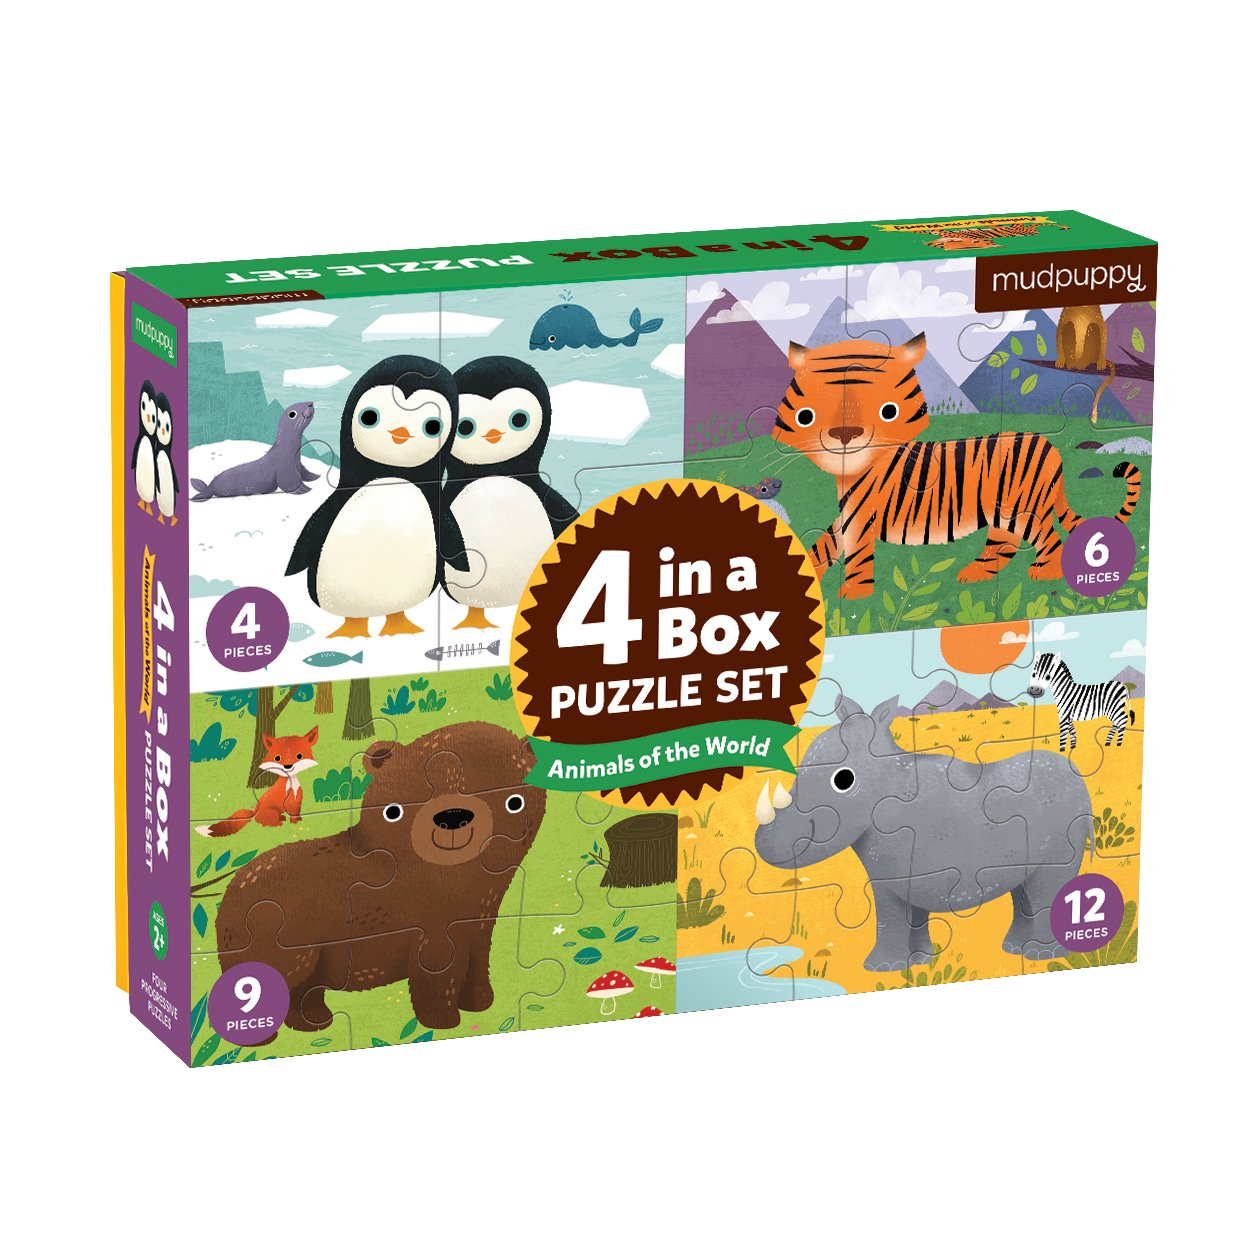 Mudpuppy 4 In A Box Puzzle Set Mudpuppy Puzzles Animals at Little Earth Nest Eco Shop